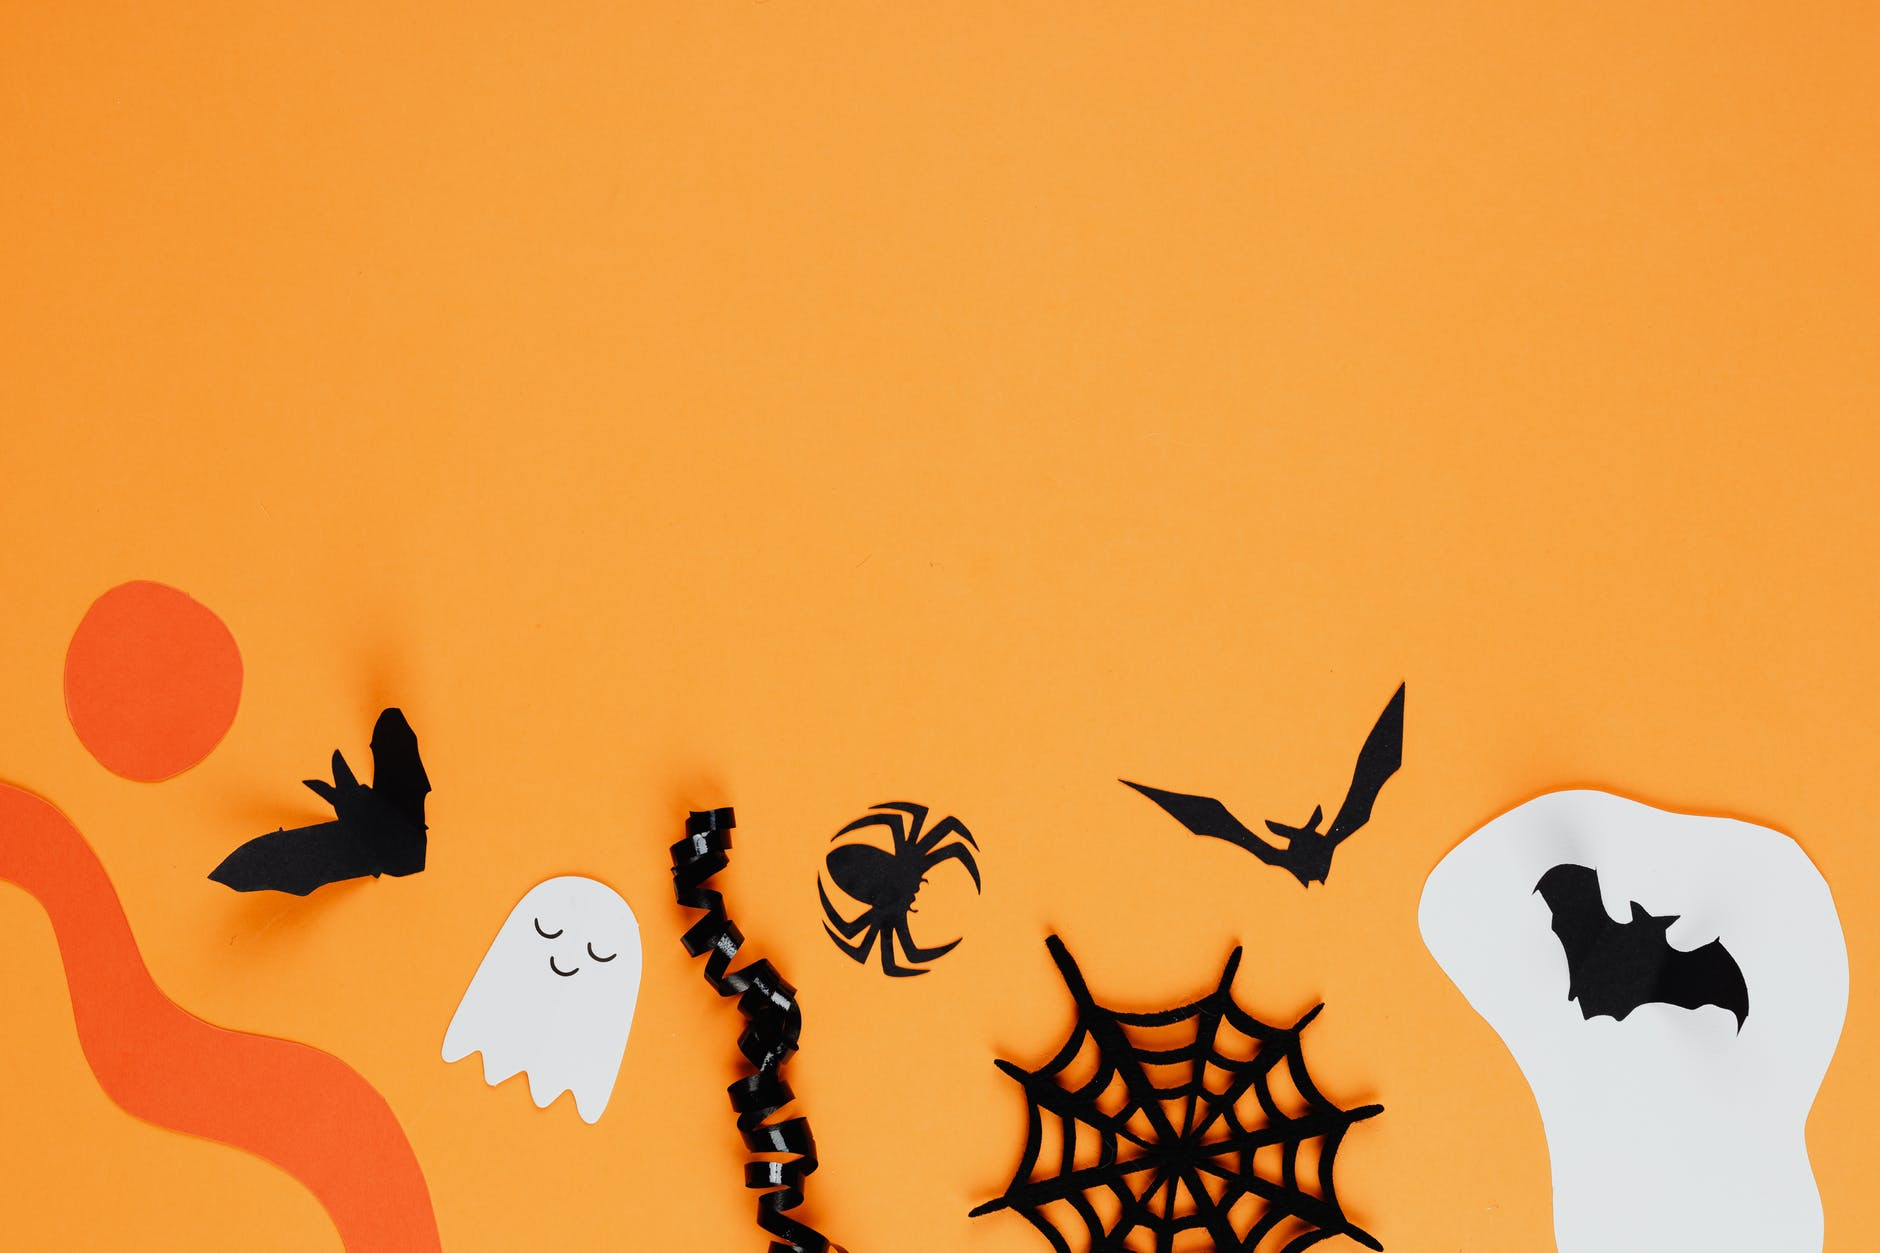 paper halloween decorations on an orange background